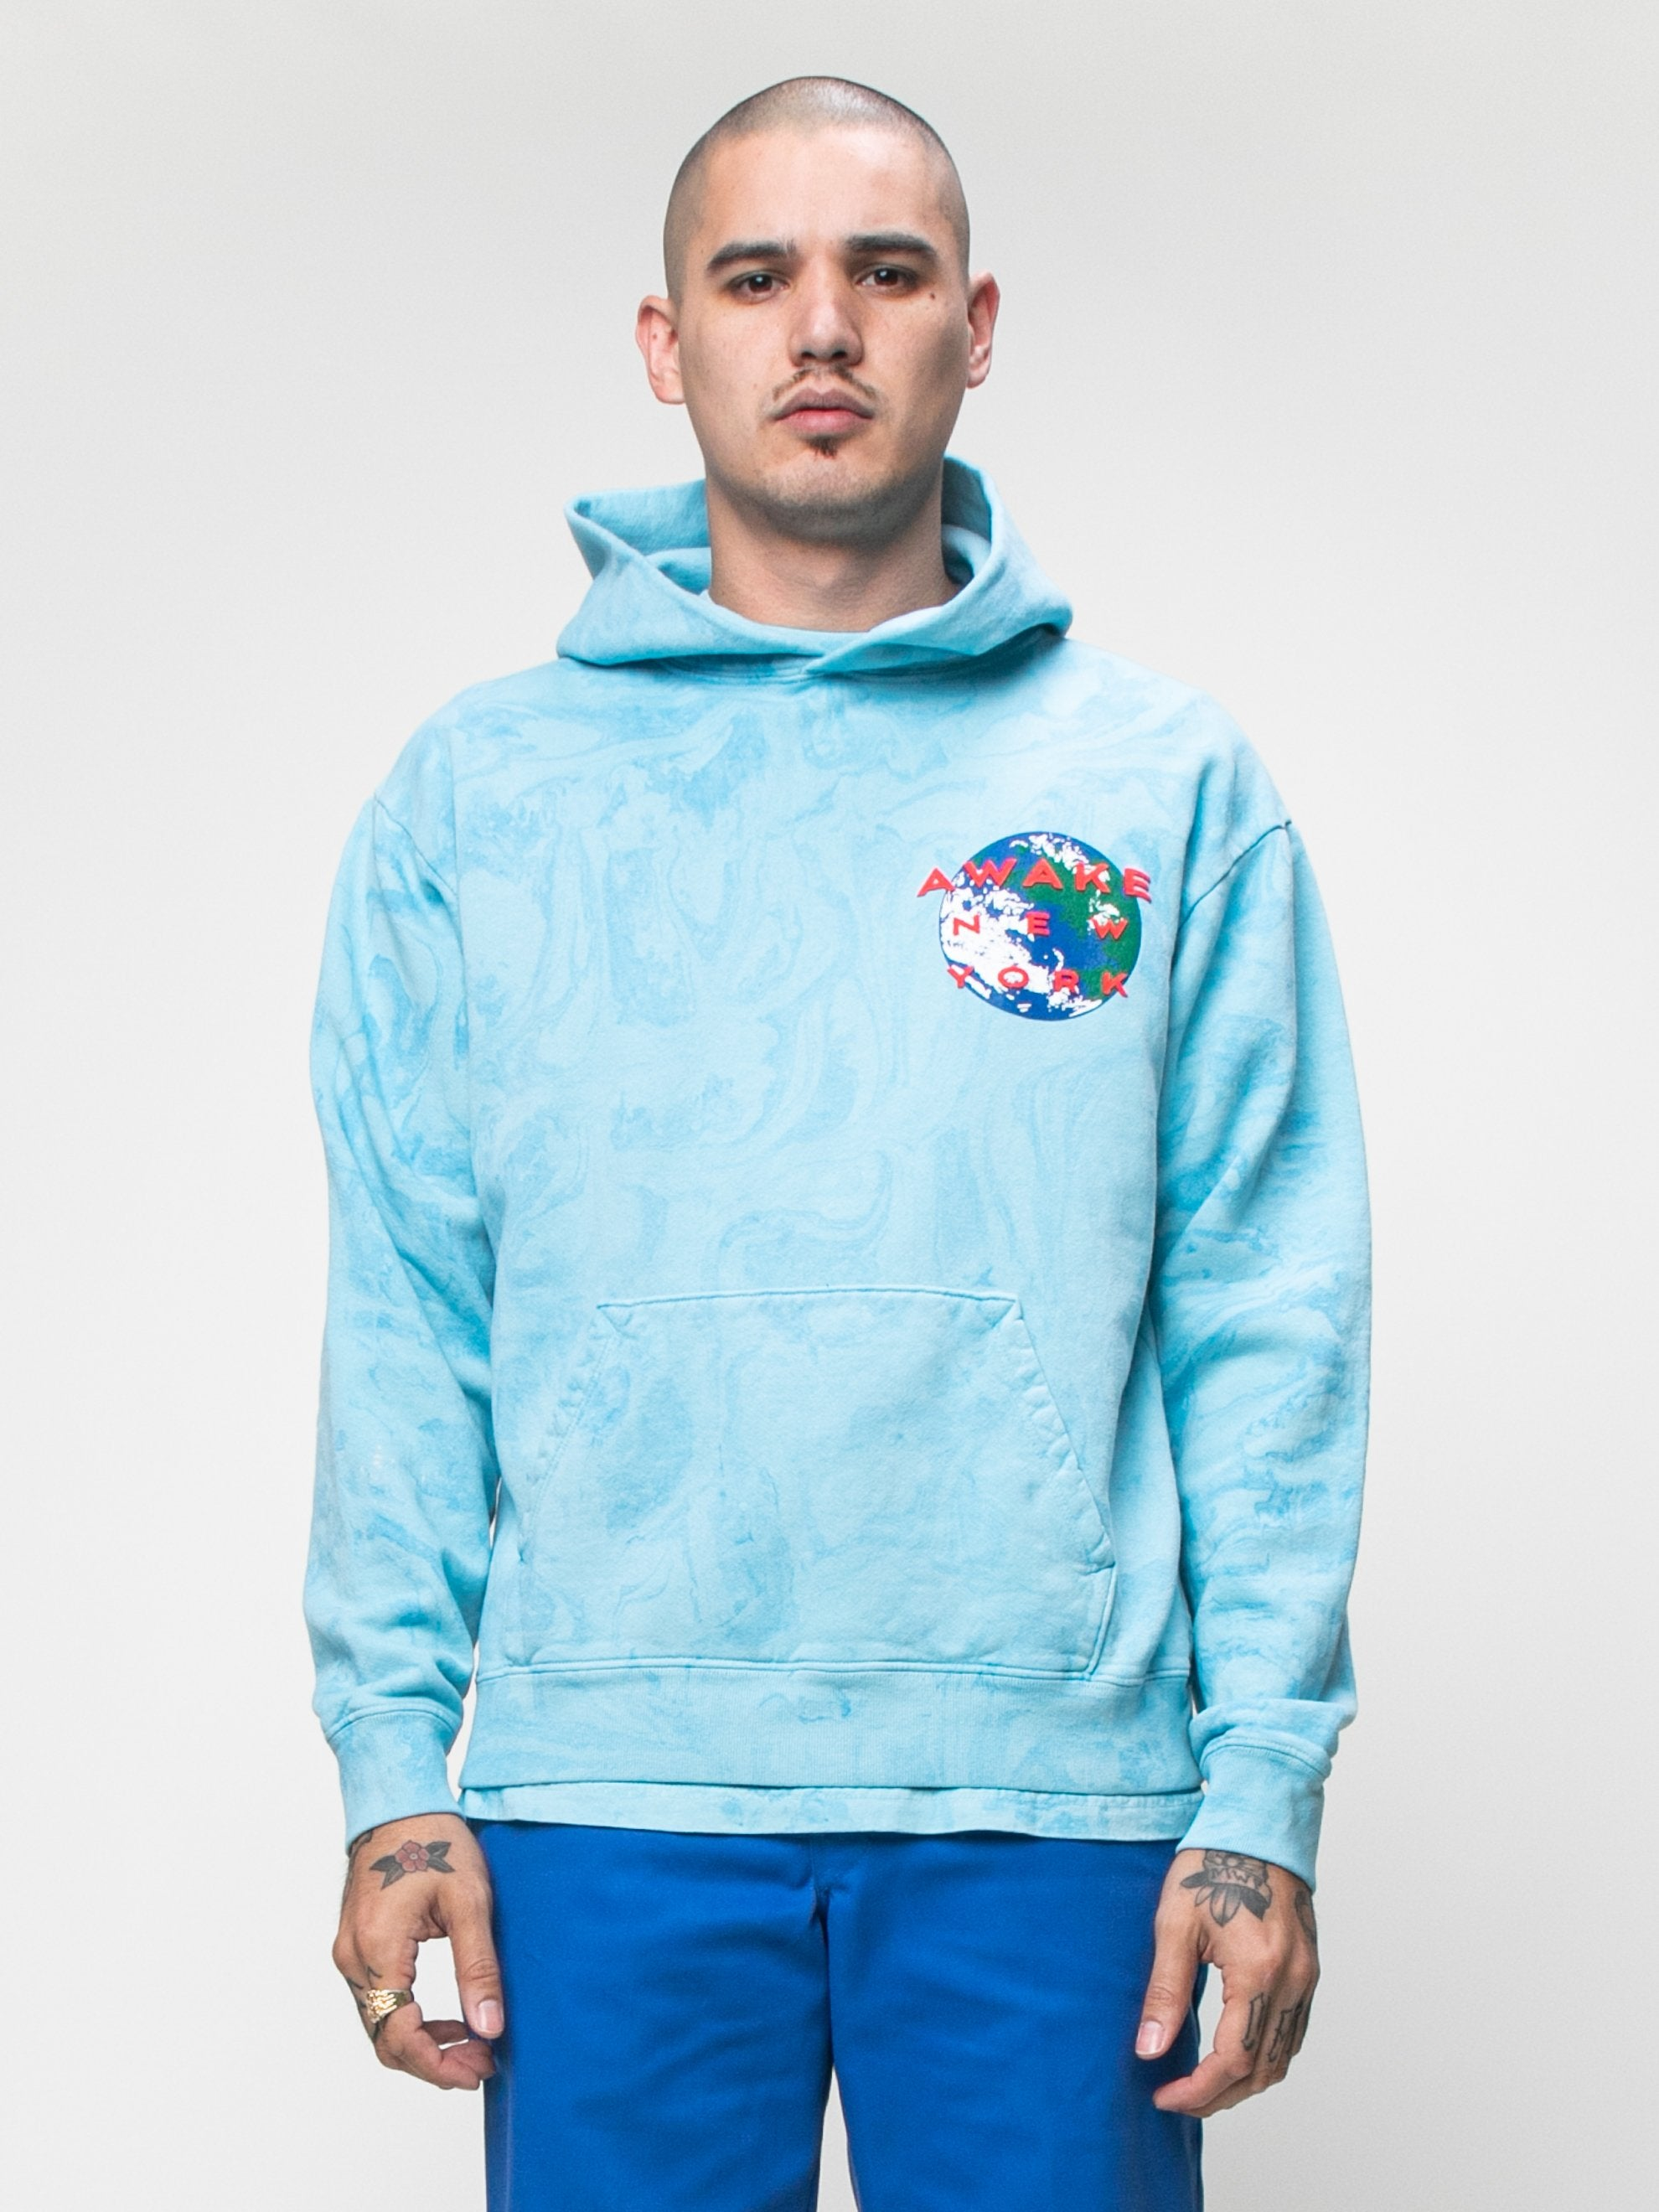 Tie Dye Awake x Eco World Hooded Sweatshirt 2